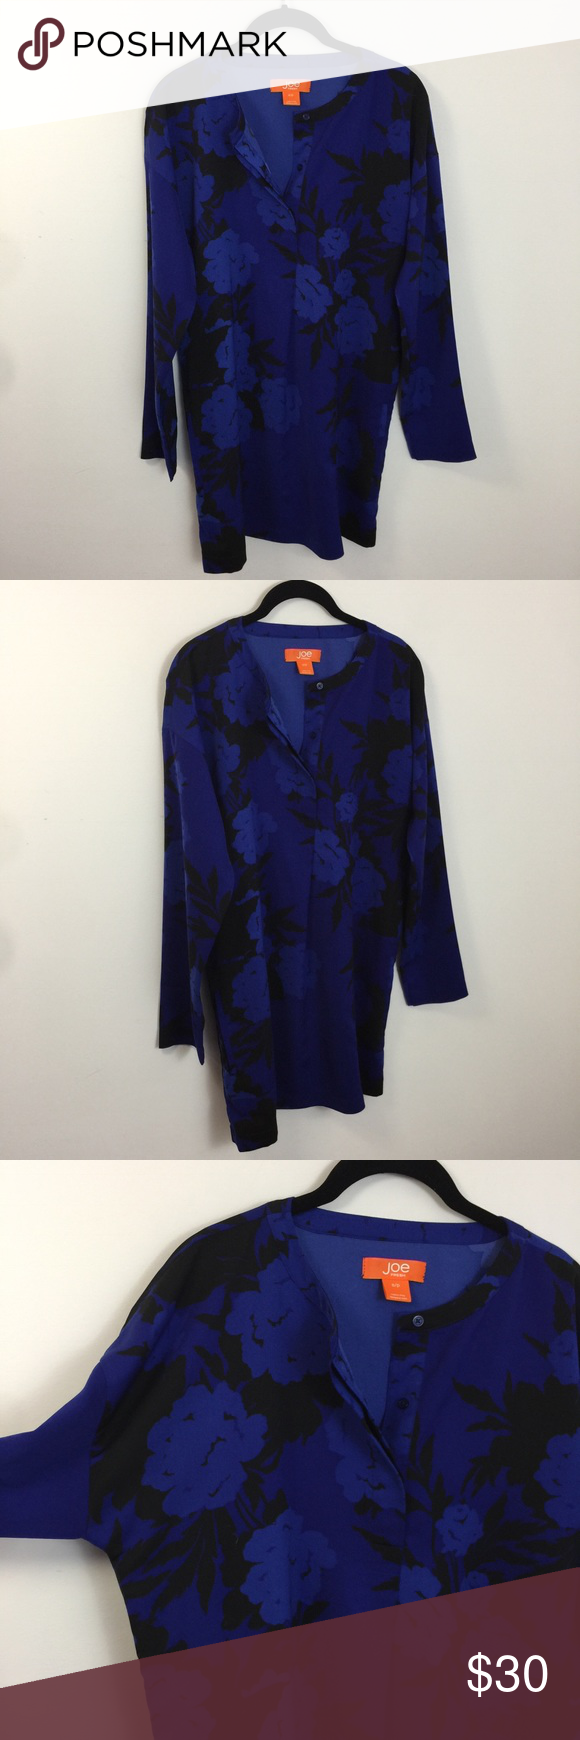 4d24b7150b96a Joe Fresh Navy Black Satin Silk Top Blouse Tunic Joe Fresh Tunic Lot 300e Joe  Fresh Tops